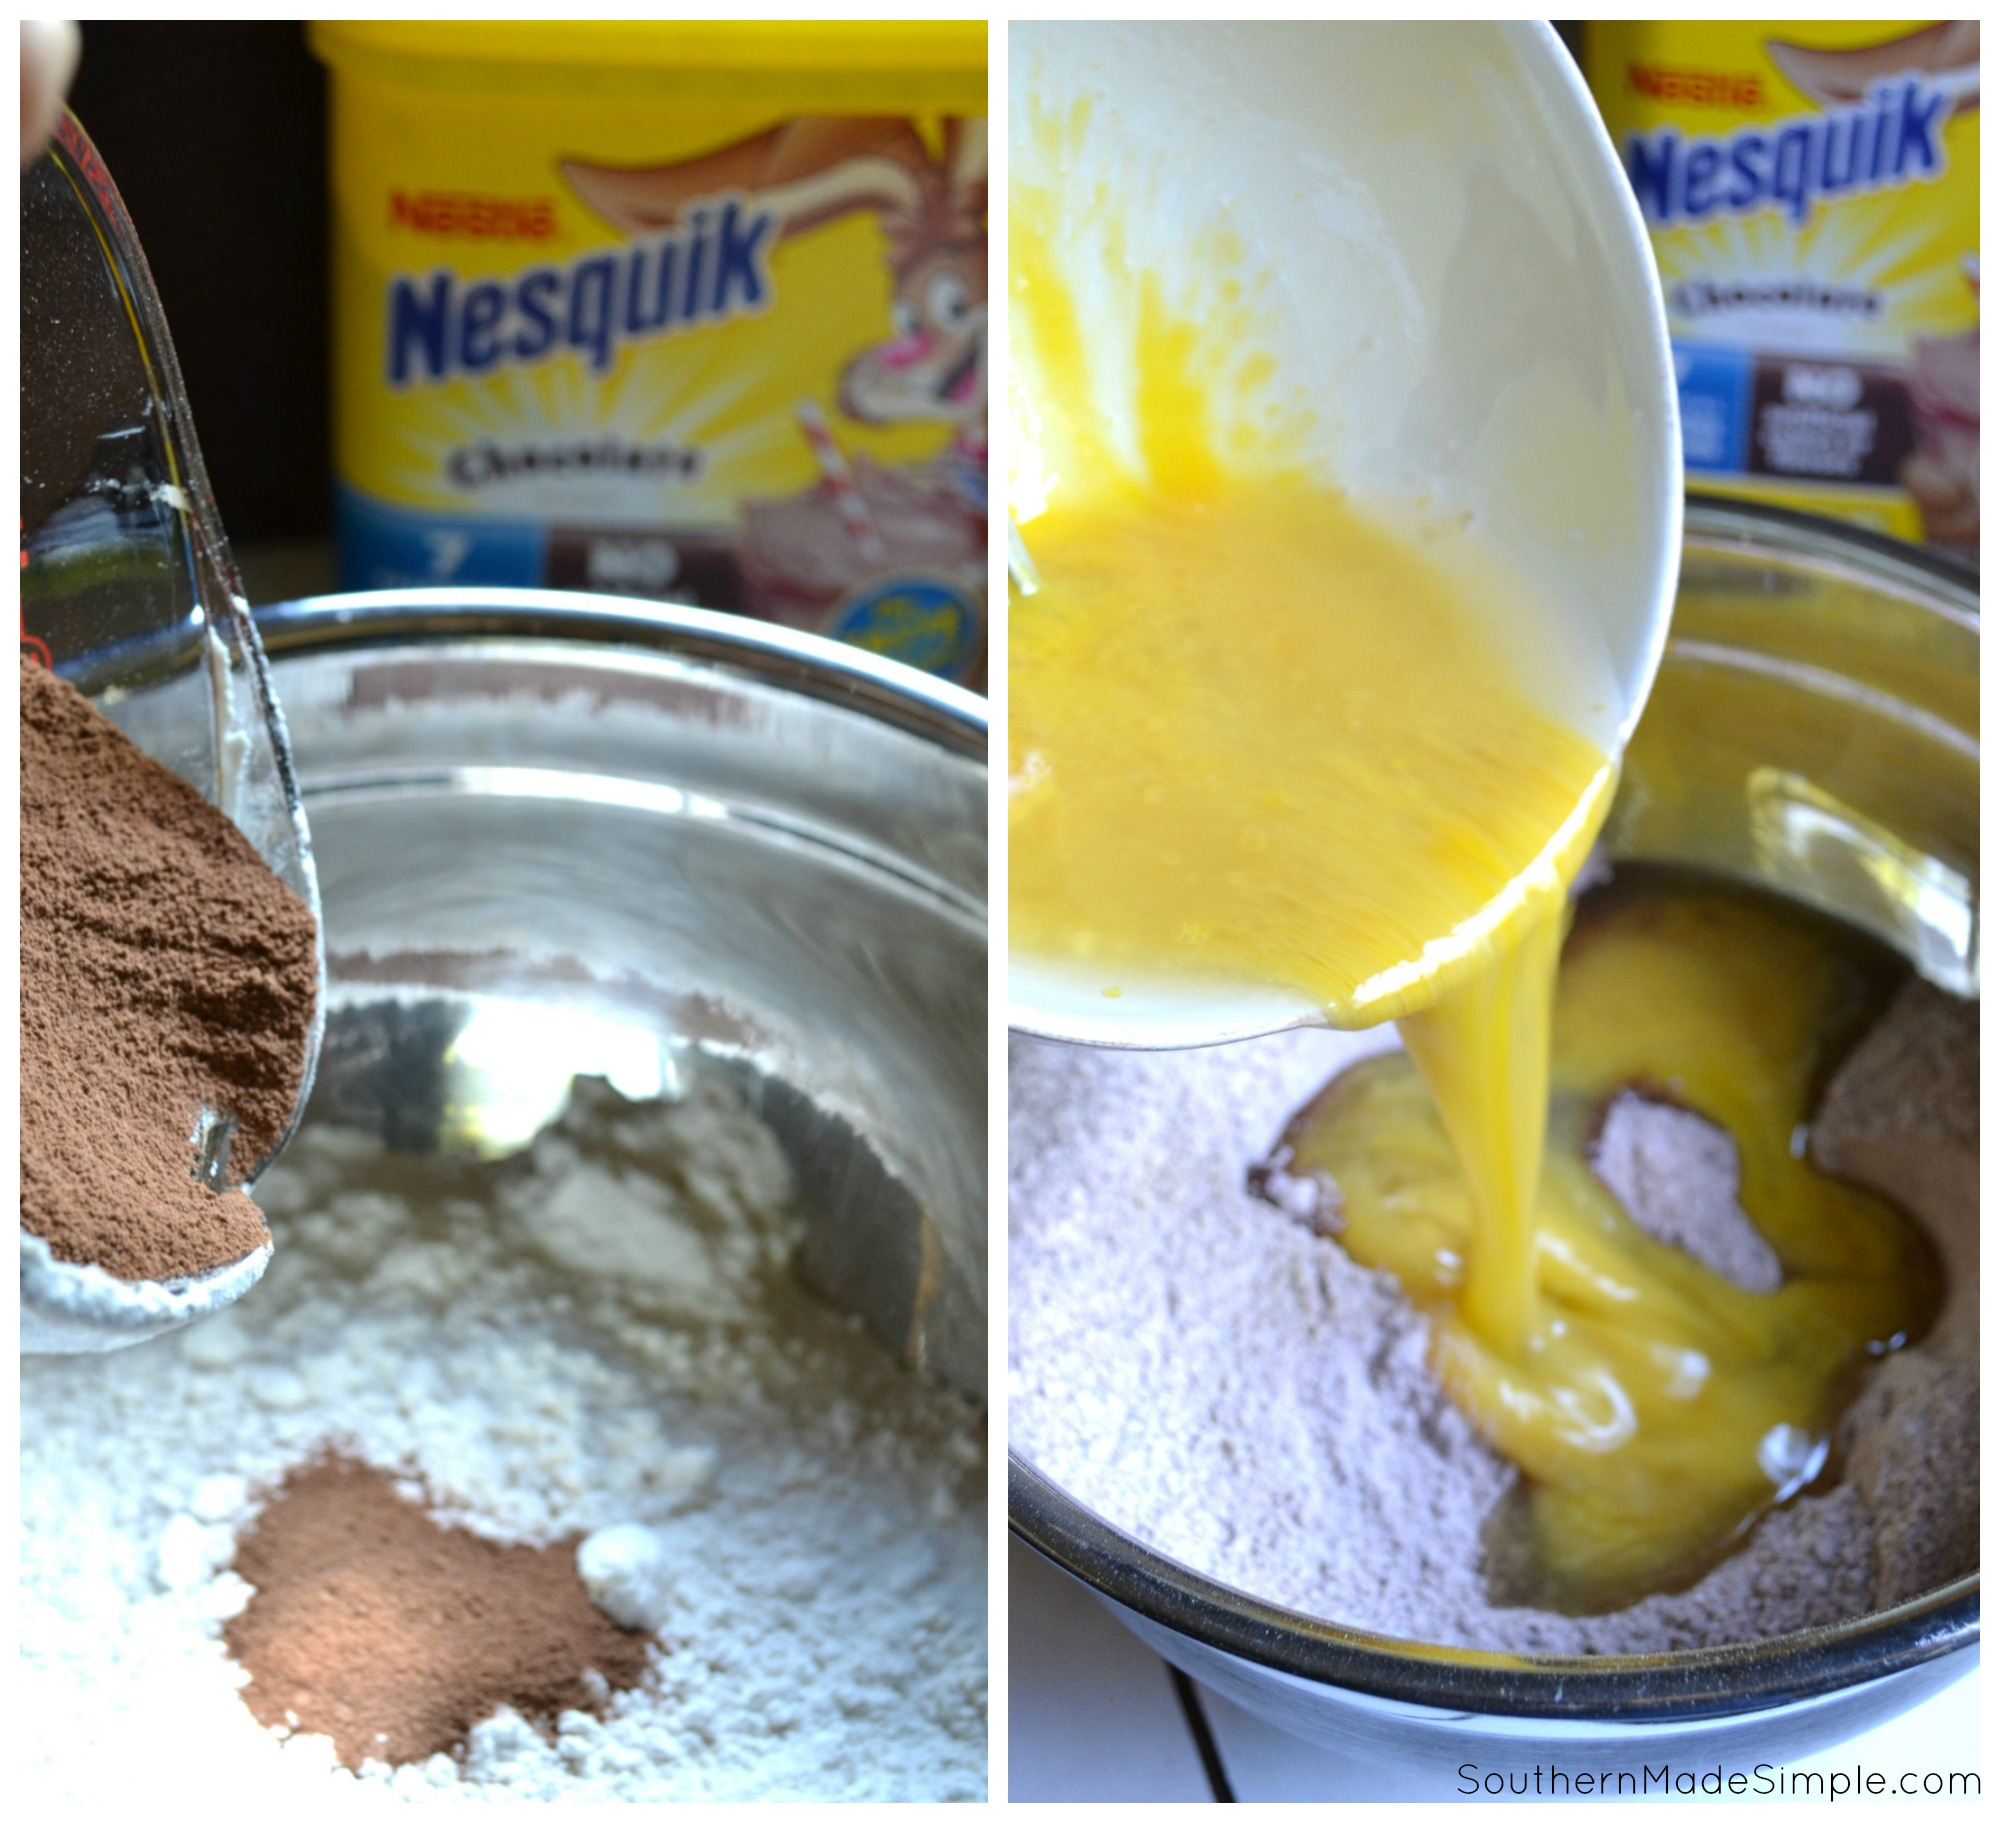 We all know that Nesquik make your milk taste amazing, but adding it to your brownie mix takes things to a whole nother level! Nesquik brownies are simple, delicious and even contain 7 essential vitamins and minerals! #StirImagination #ad